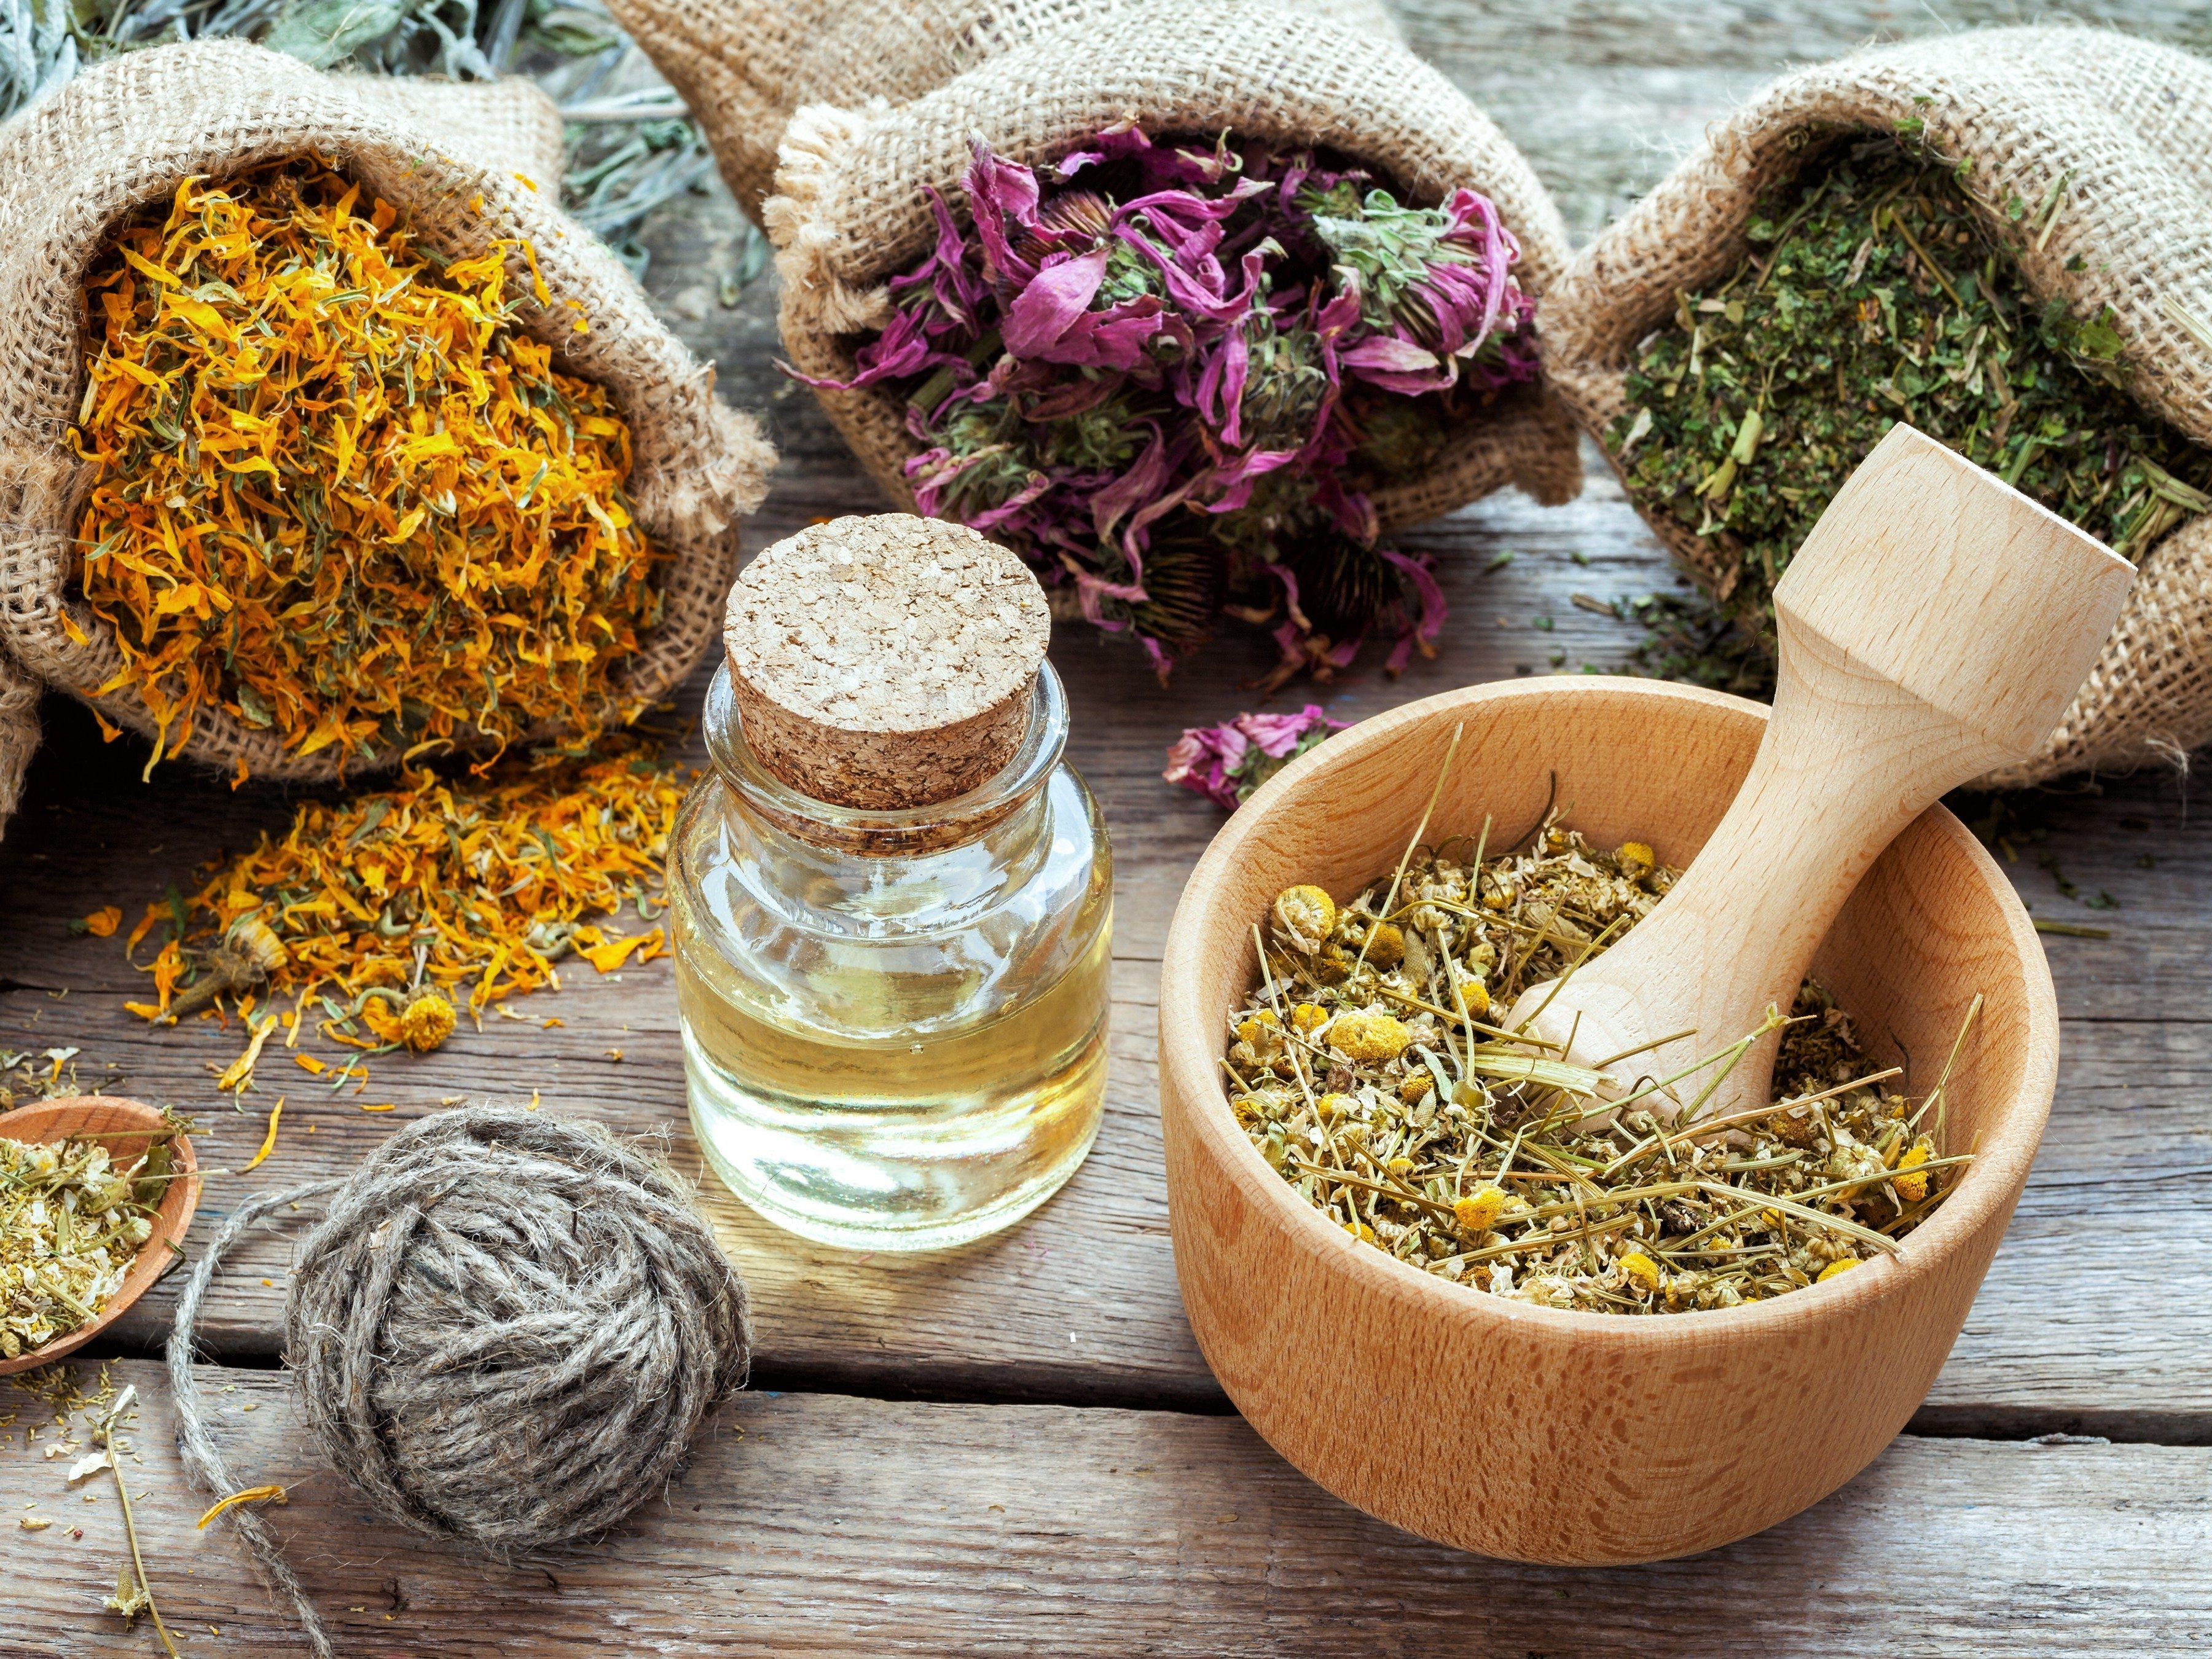 Home remedies for nausea - homeopathy